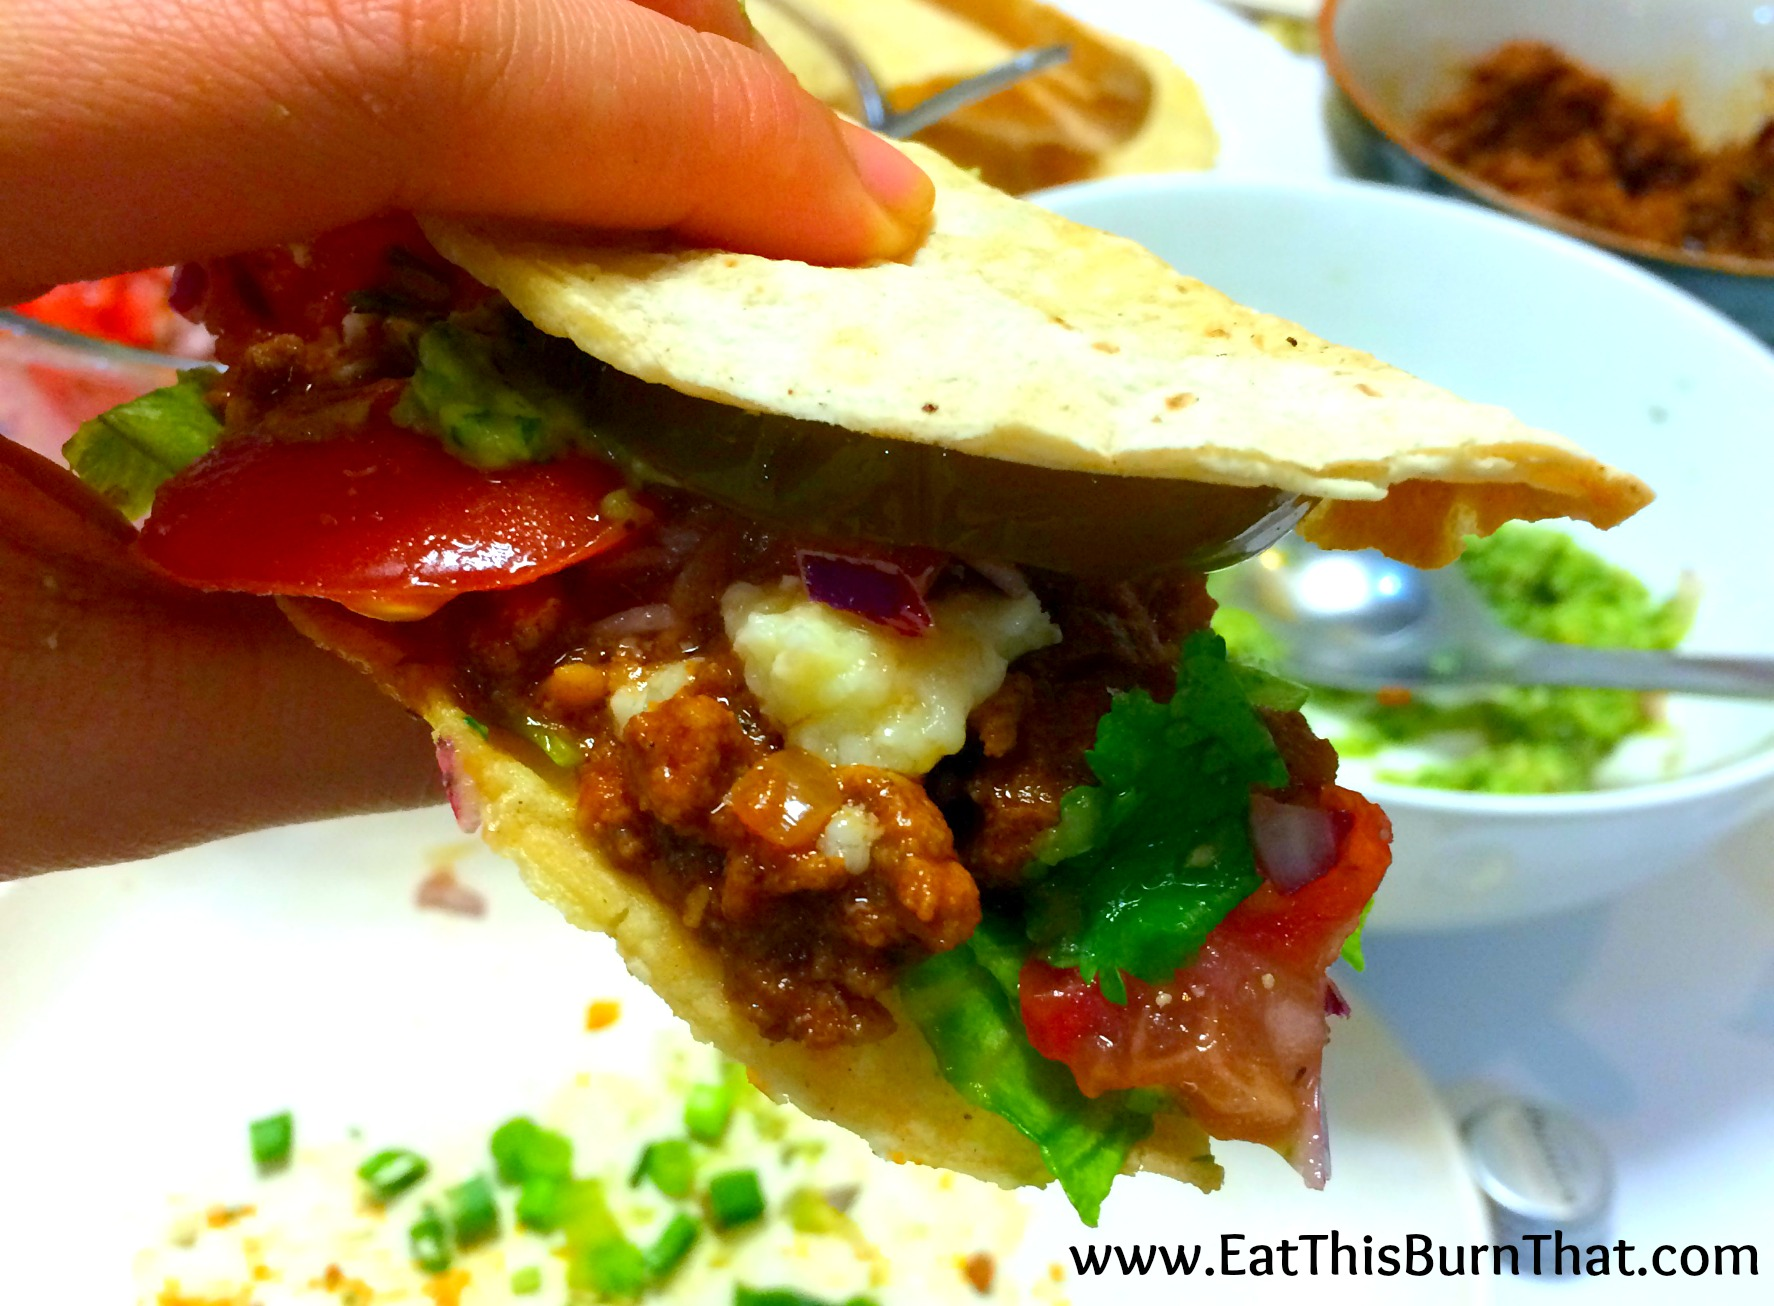 Homemade Healthy Beef Tacos - made out of fresh, wholesome ingredients!